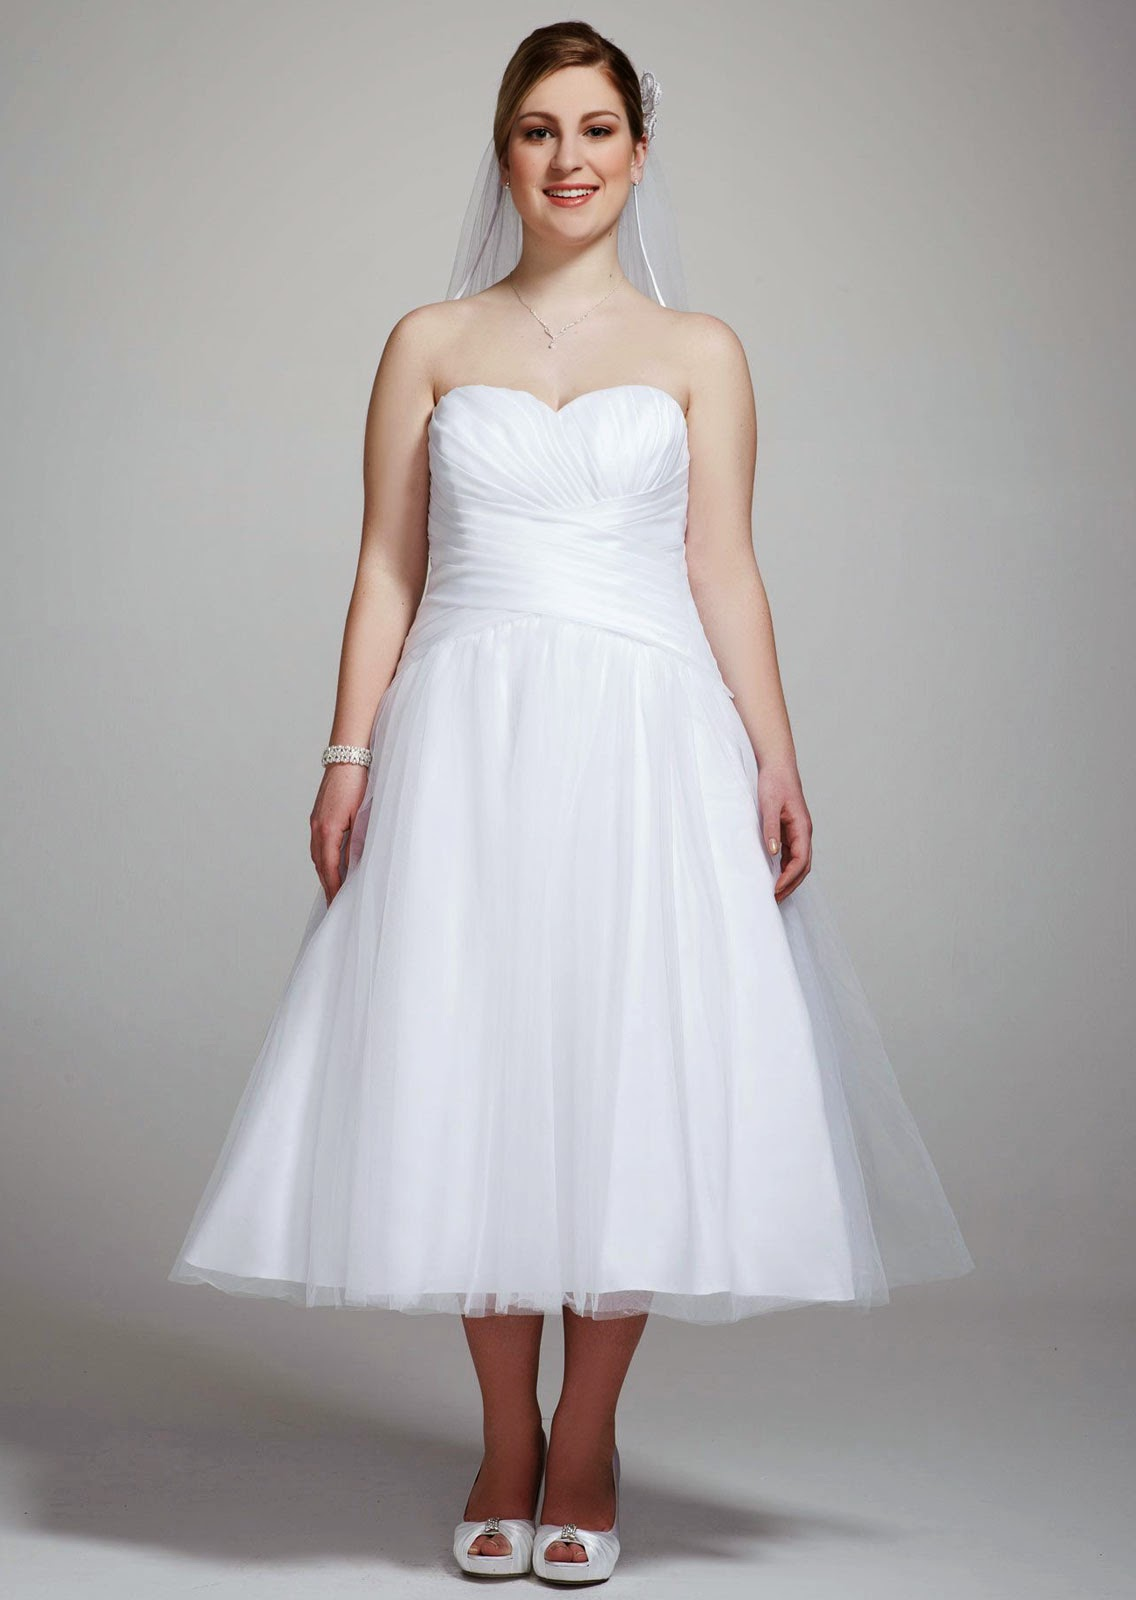 Plus Size Casual Wedding Dresses Ideas Photos HD